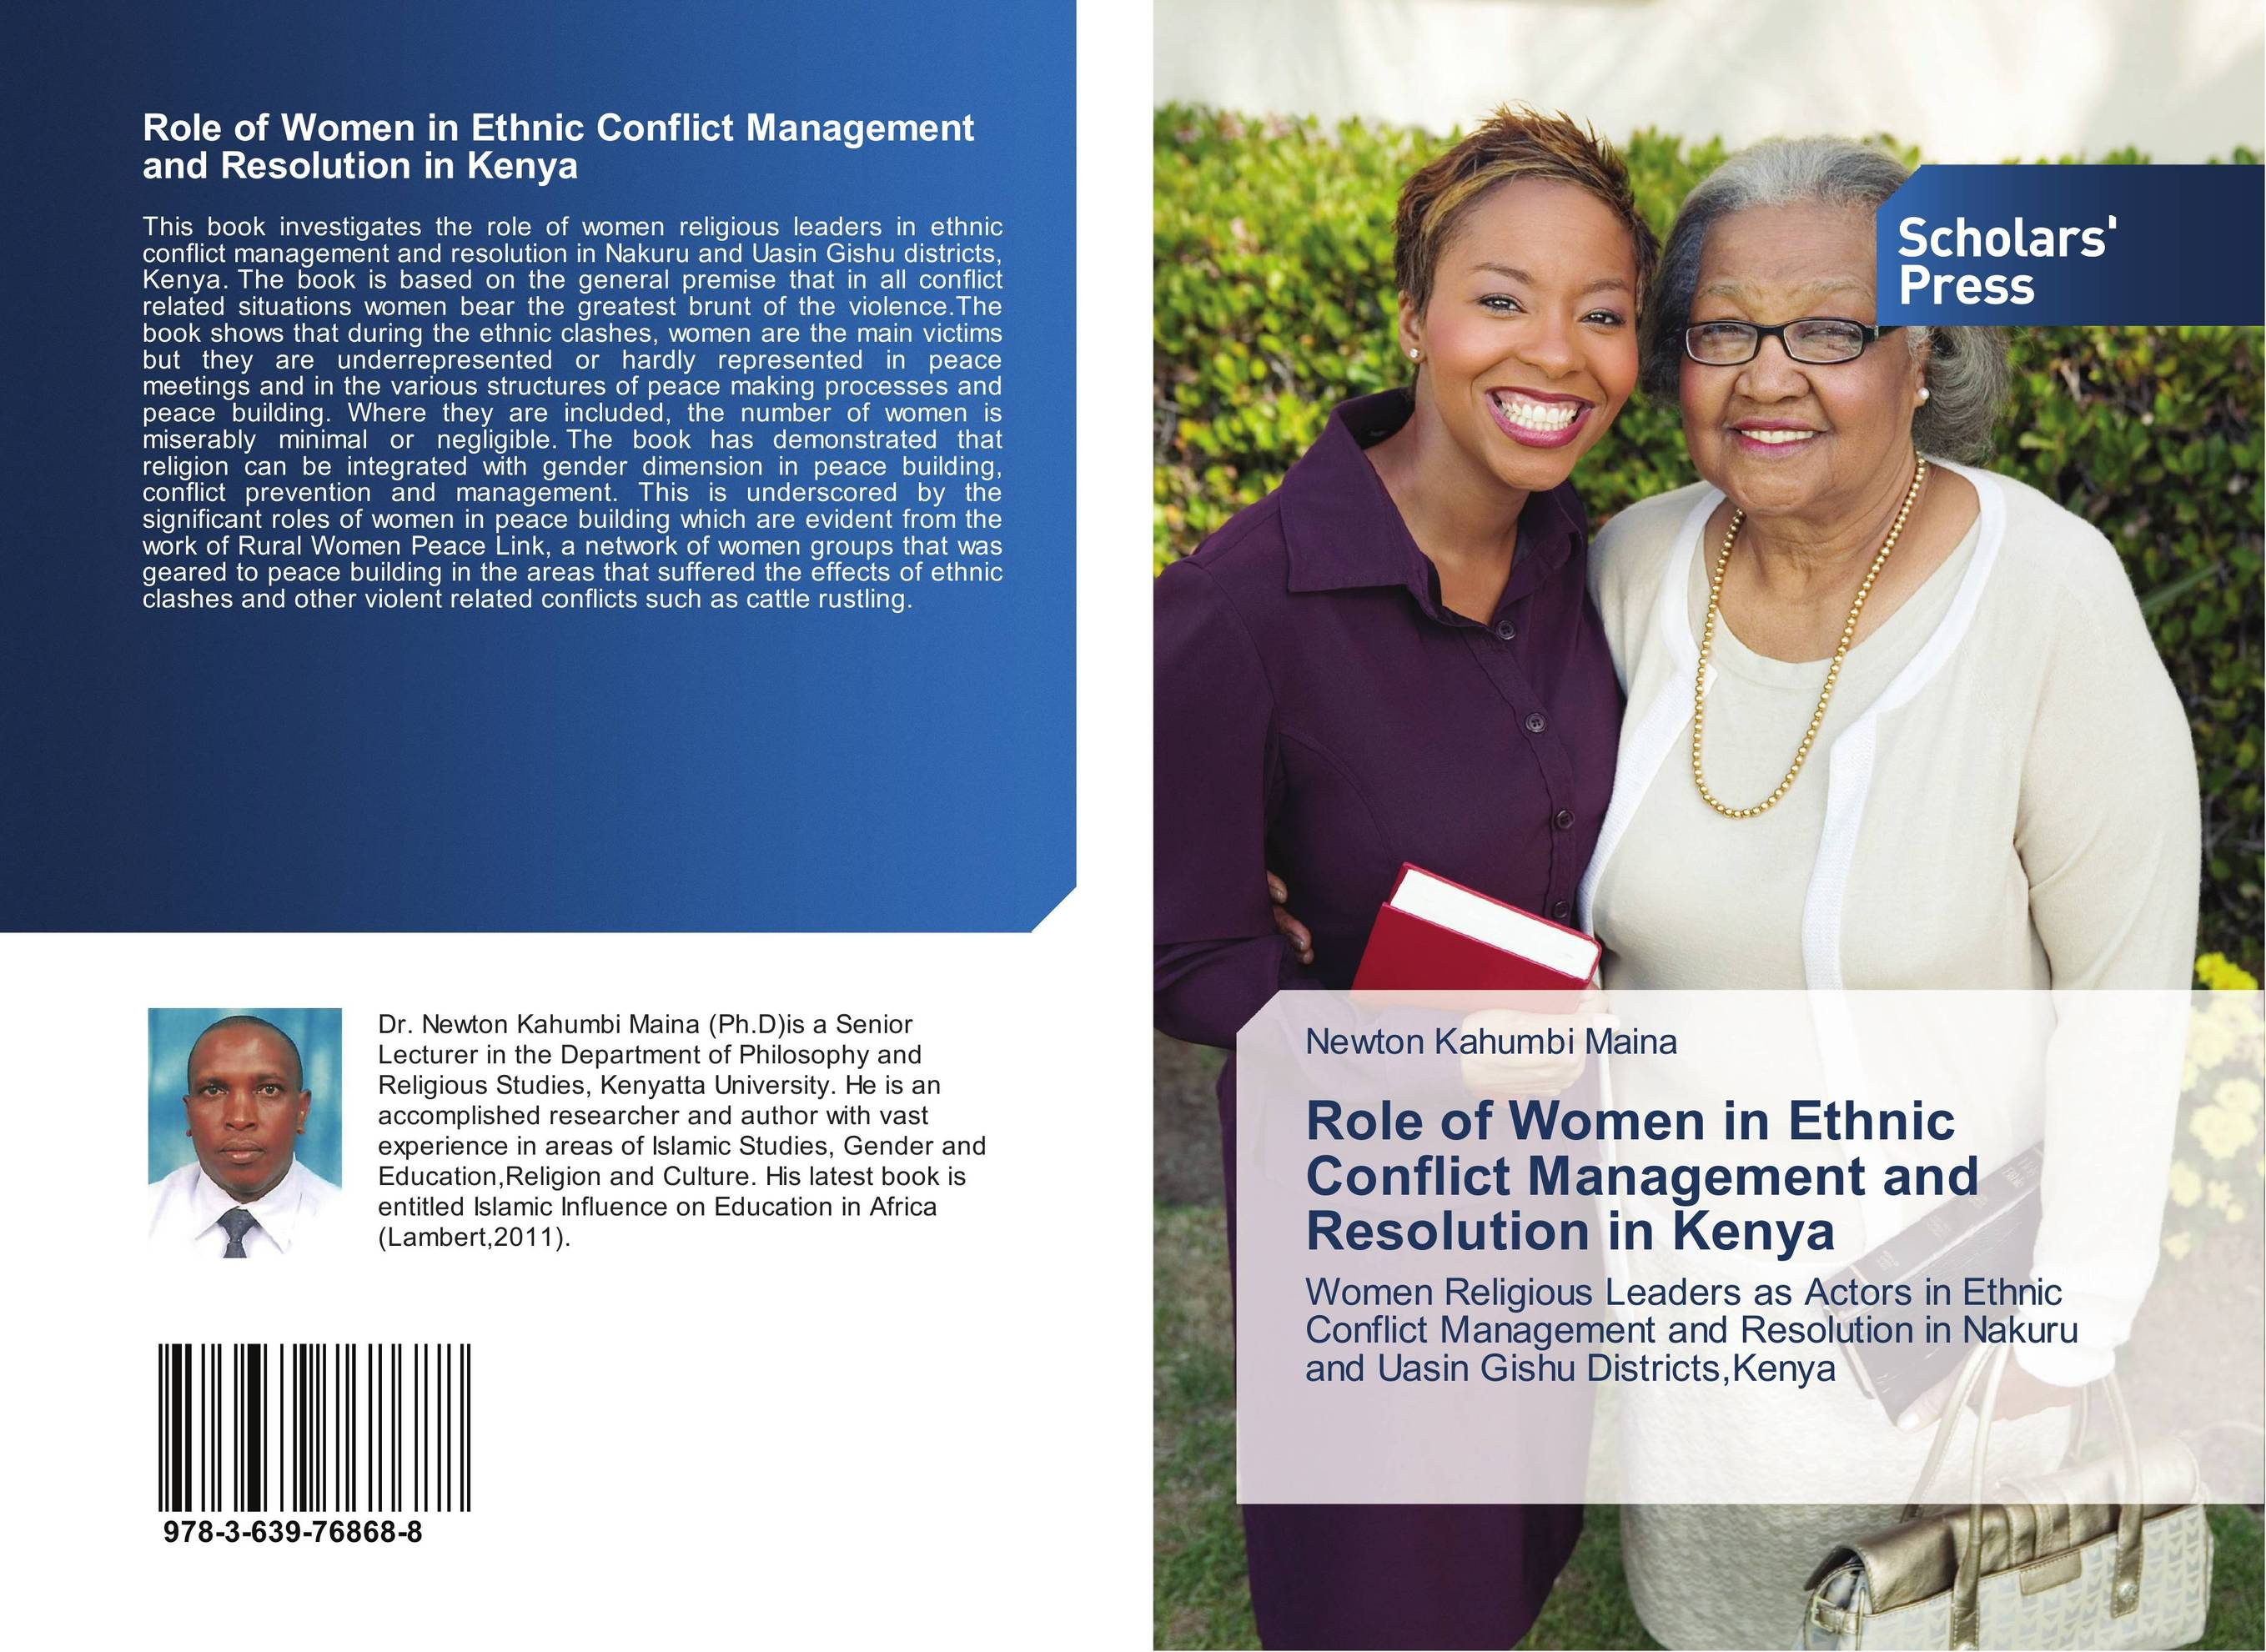 Role of Women in Ethnic Conflict Management and Resolution in Kenya тиски зубр эксперт 32604 100 page 9